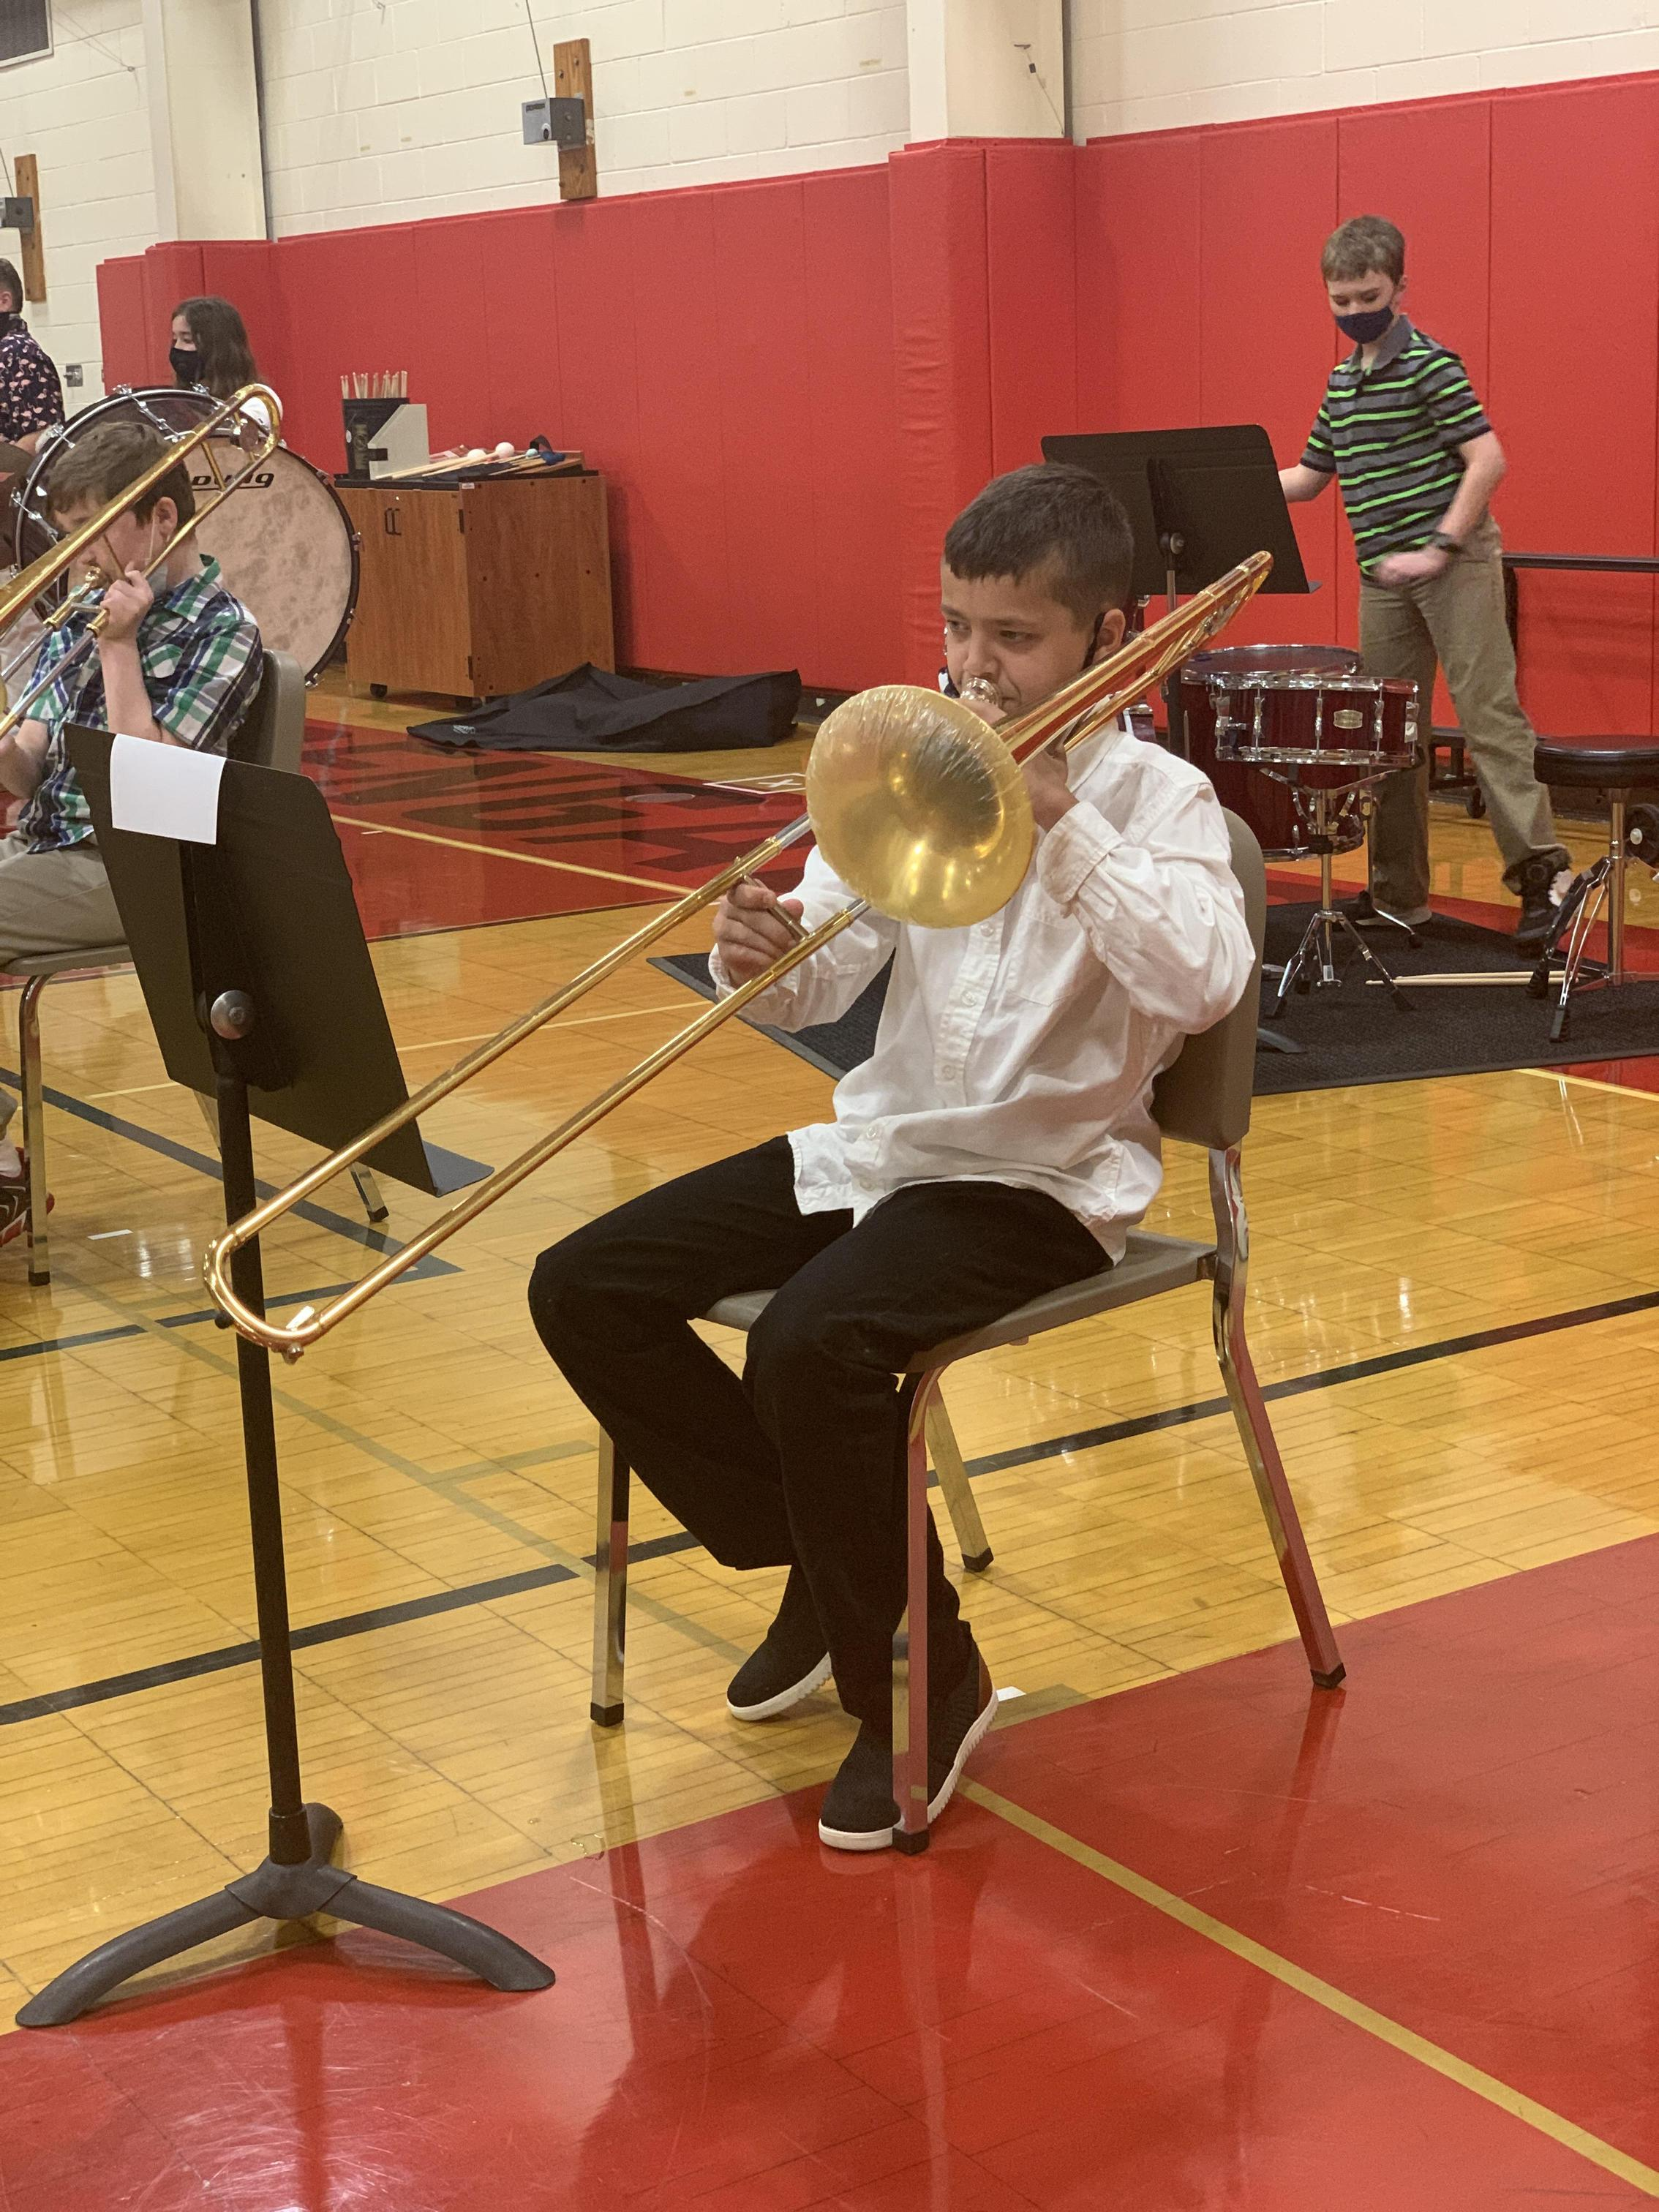 A student playing trombone in the Benjamin gym